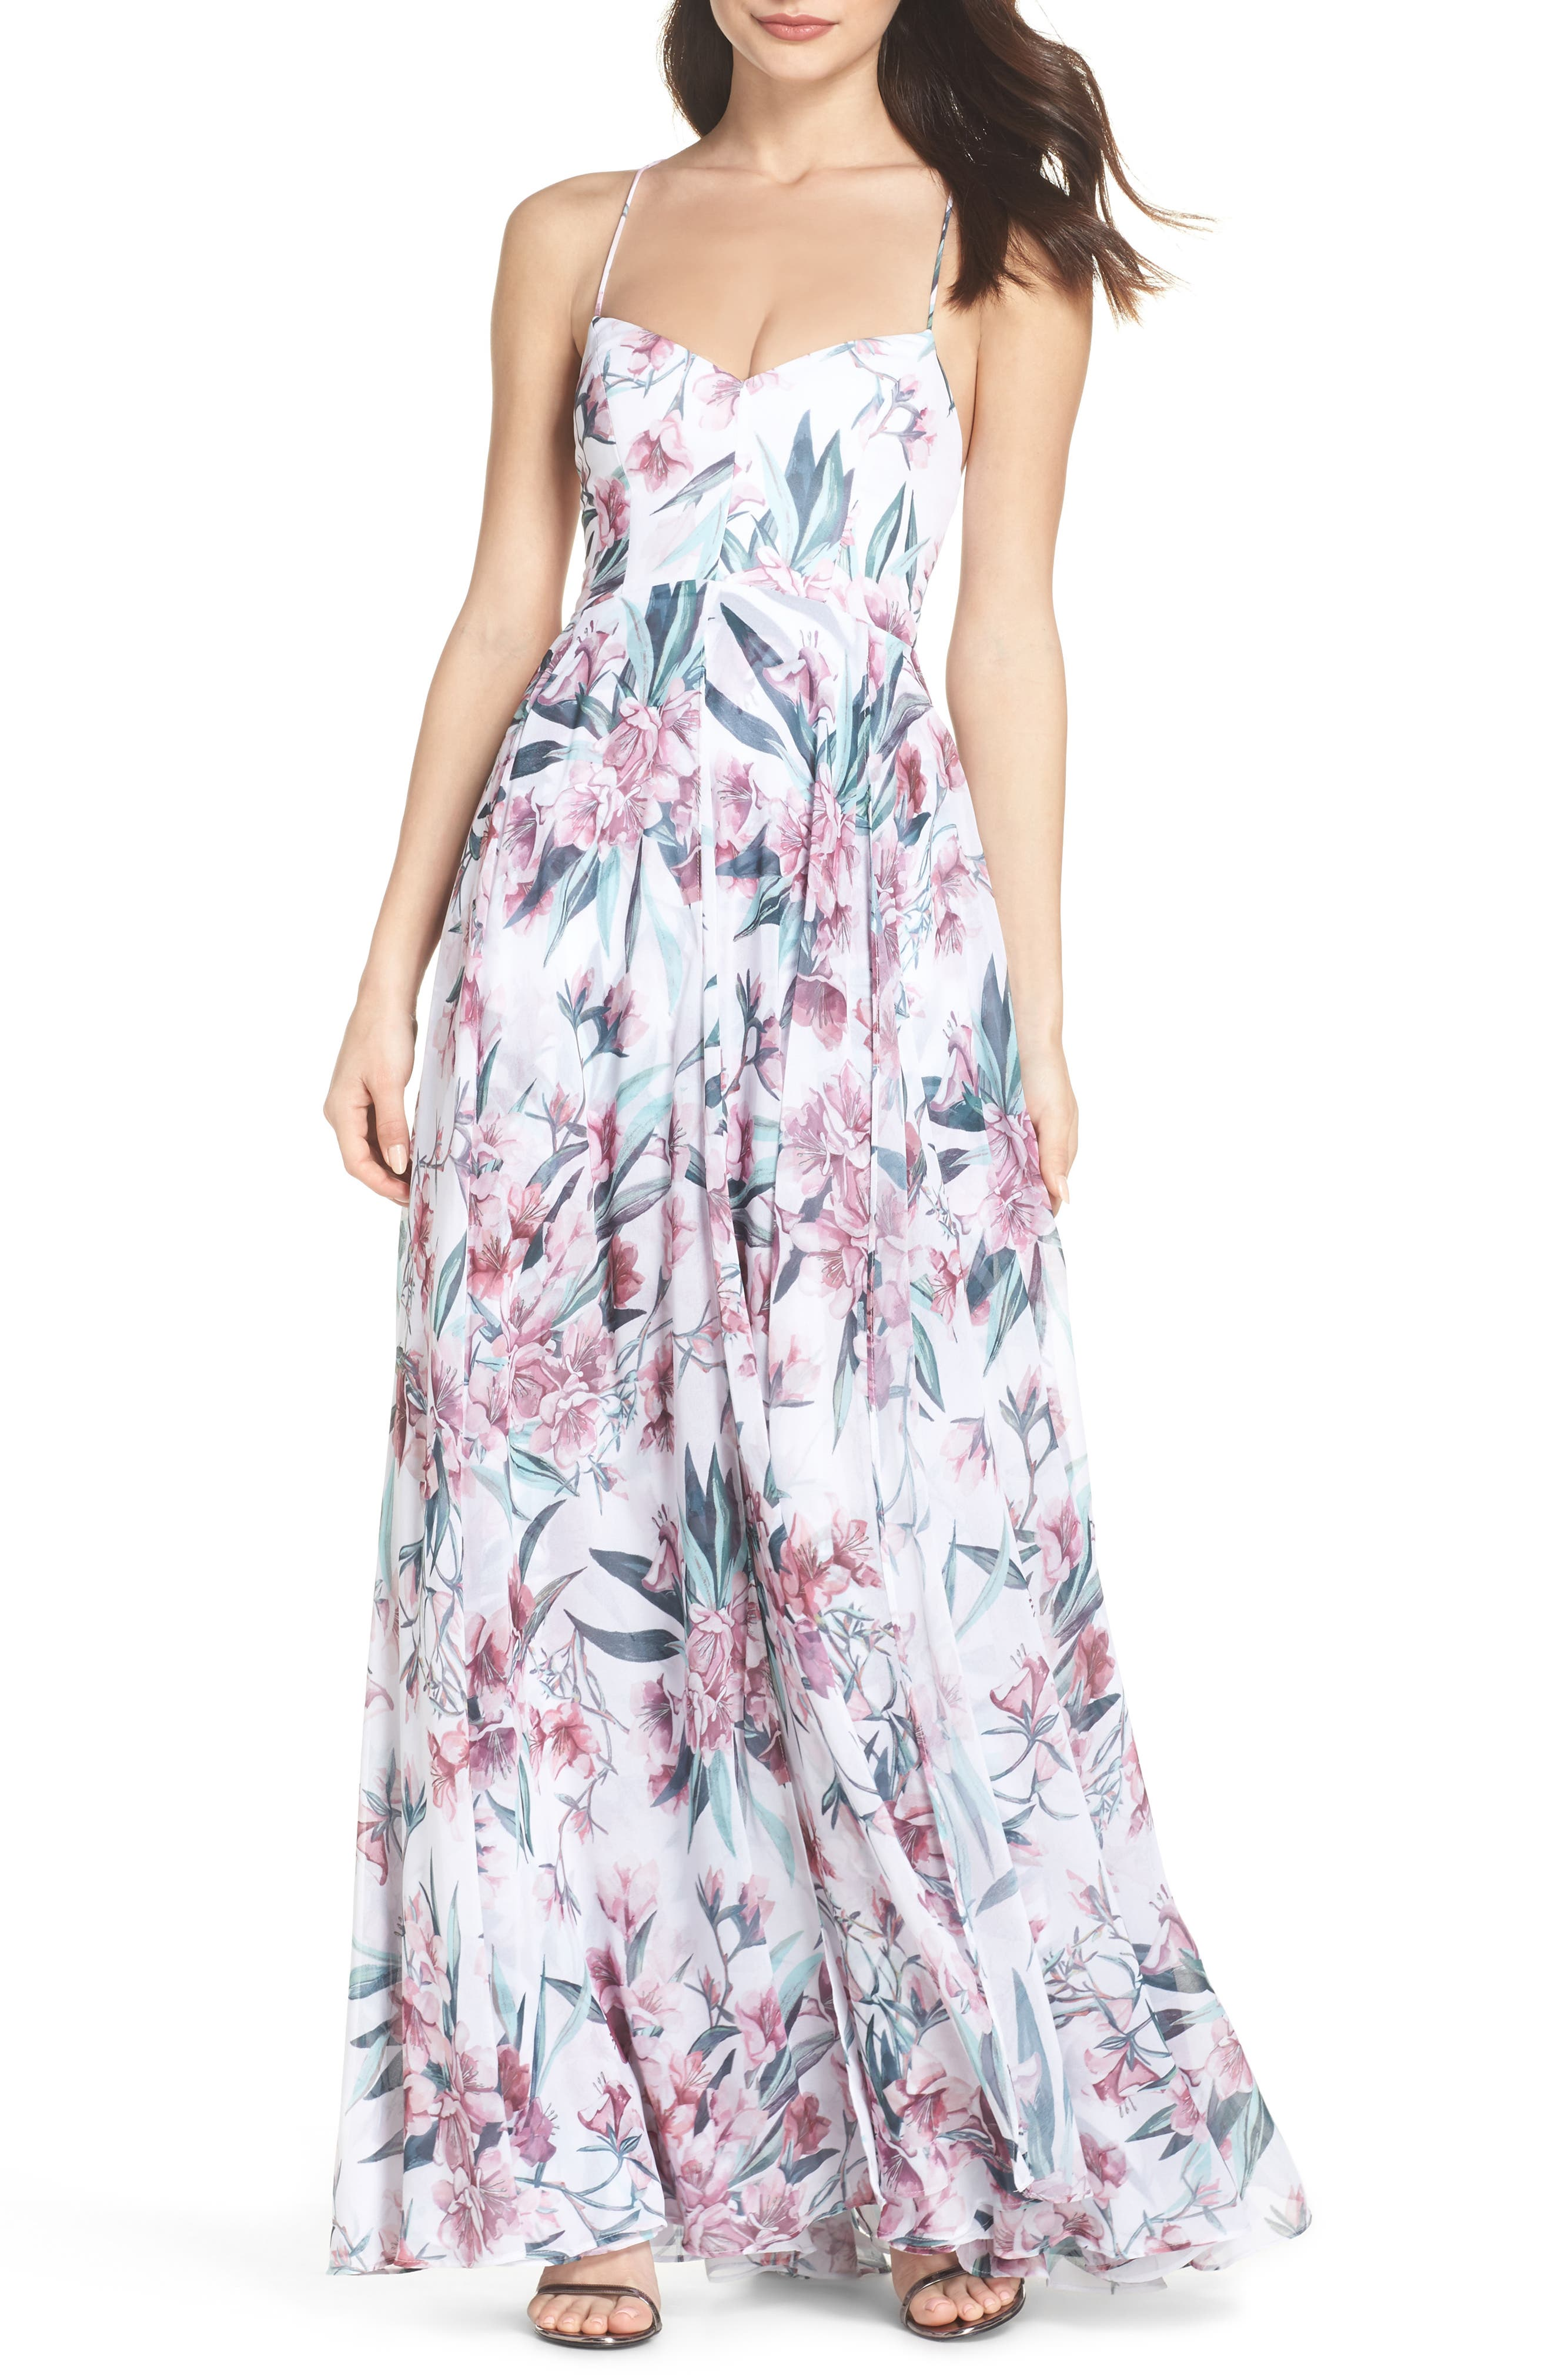 Khoo Floral Gown,                         Main,                         color, 100